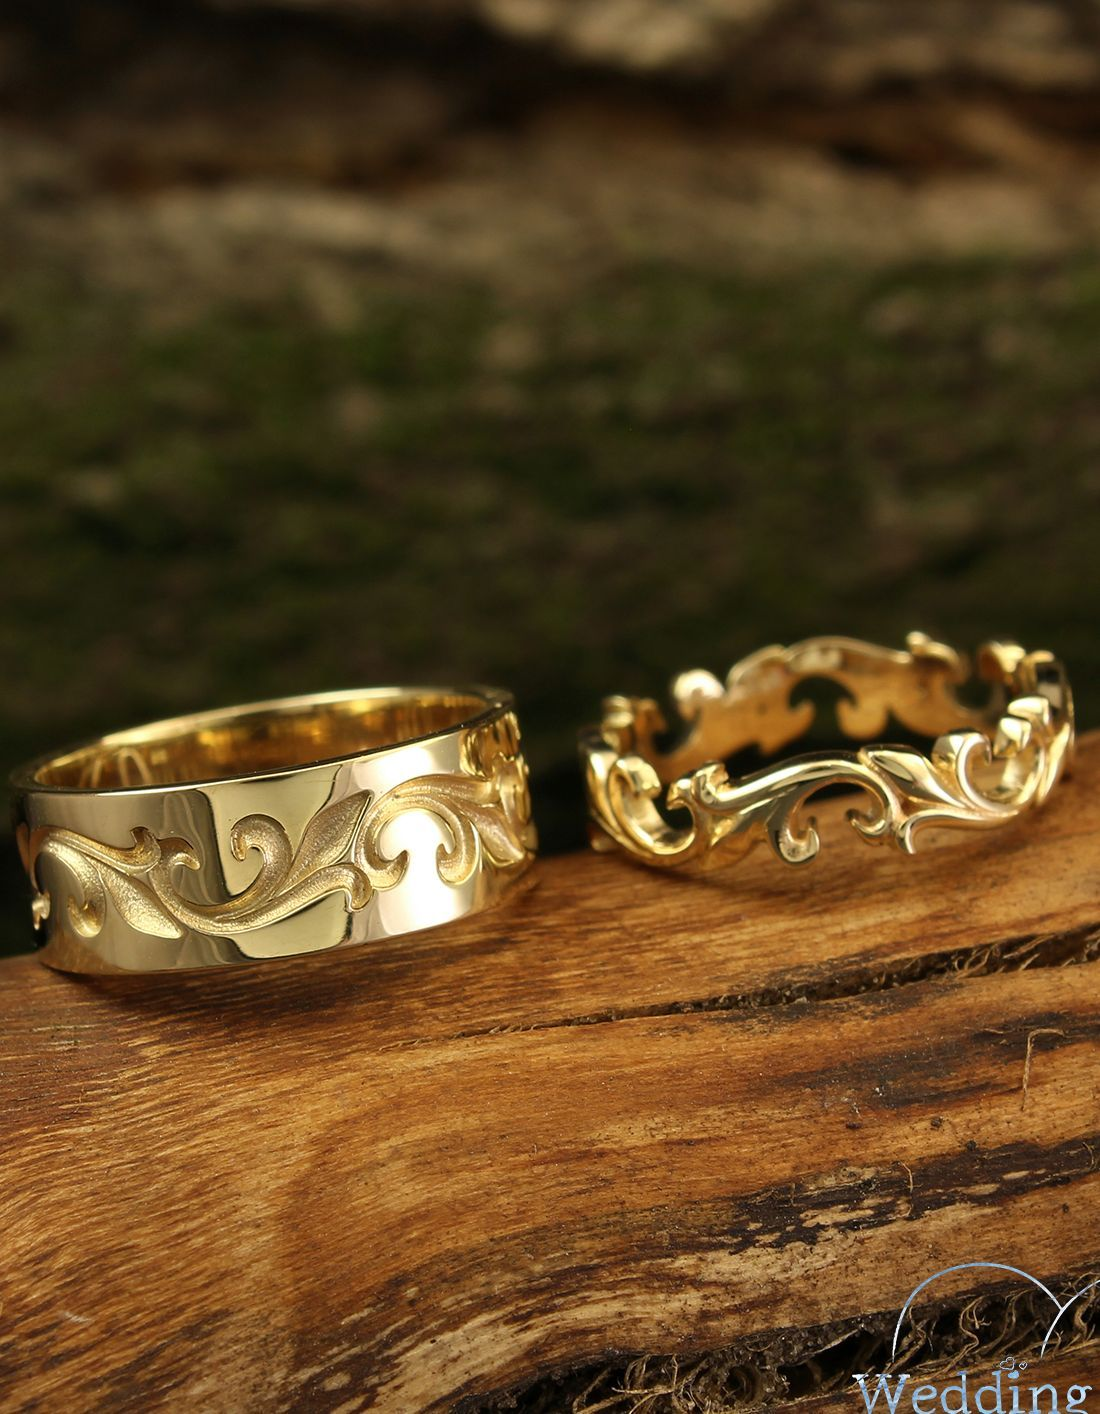 Unique Matching Wedding Bands Set Vine Wedding Rings His And Etsy In 2021 Wedding Ring Sets Unique Wedding Band Sets Wedding Rings Sets His And Hers